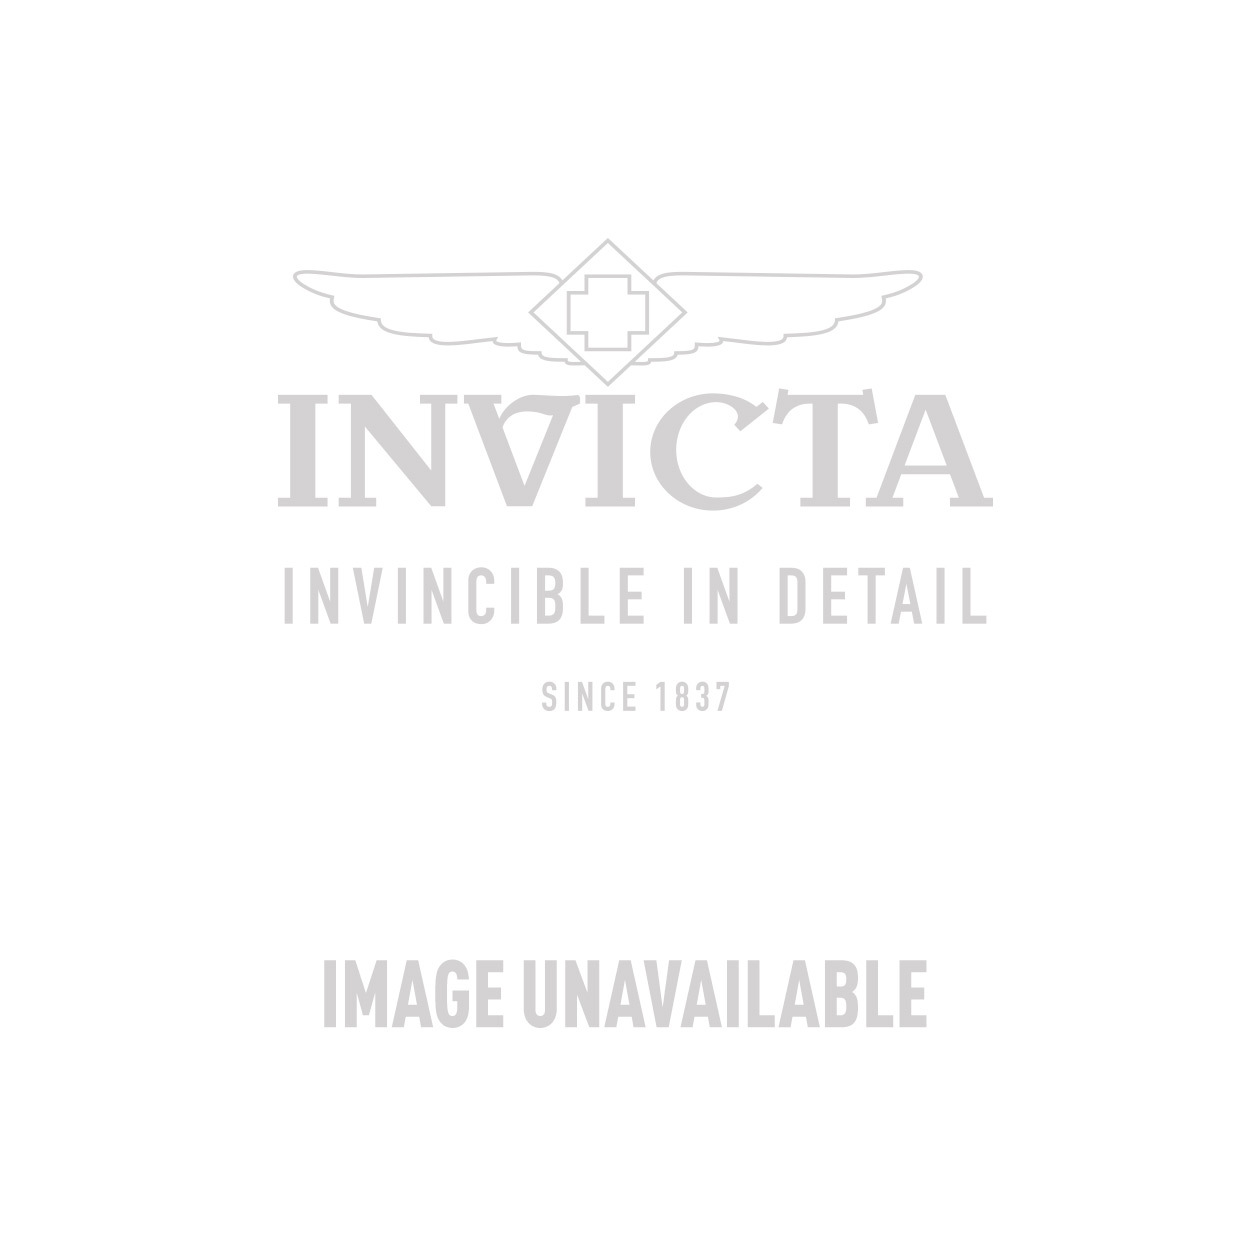 Invicta I-Force Quartz Watch - Stainless Steel case - Model 11525